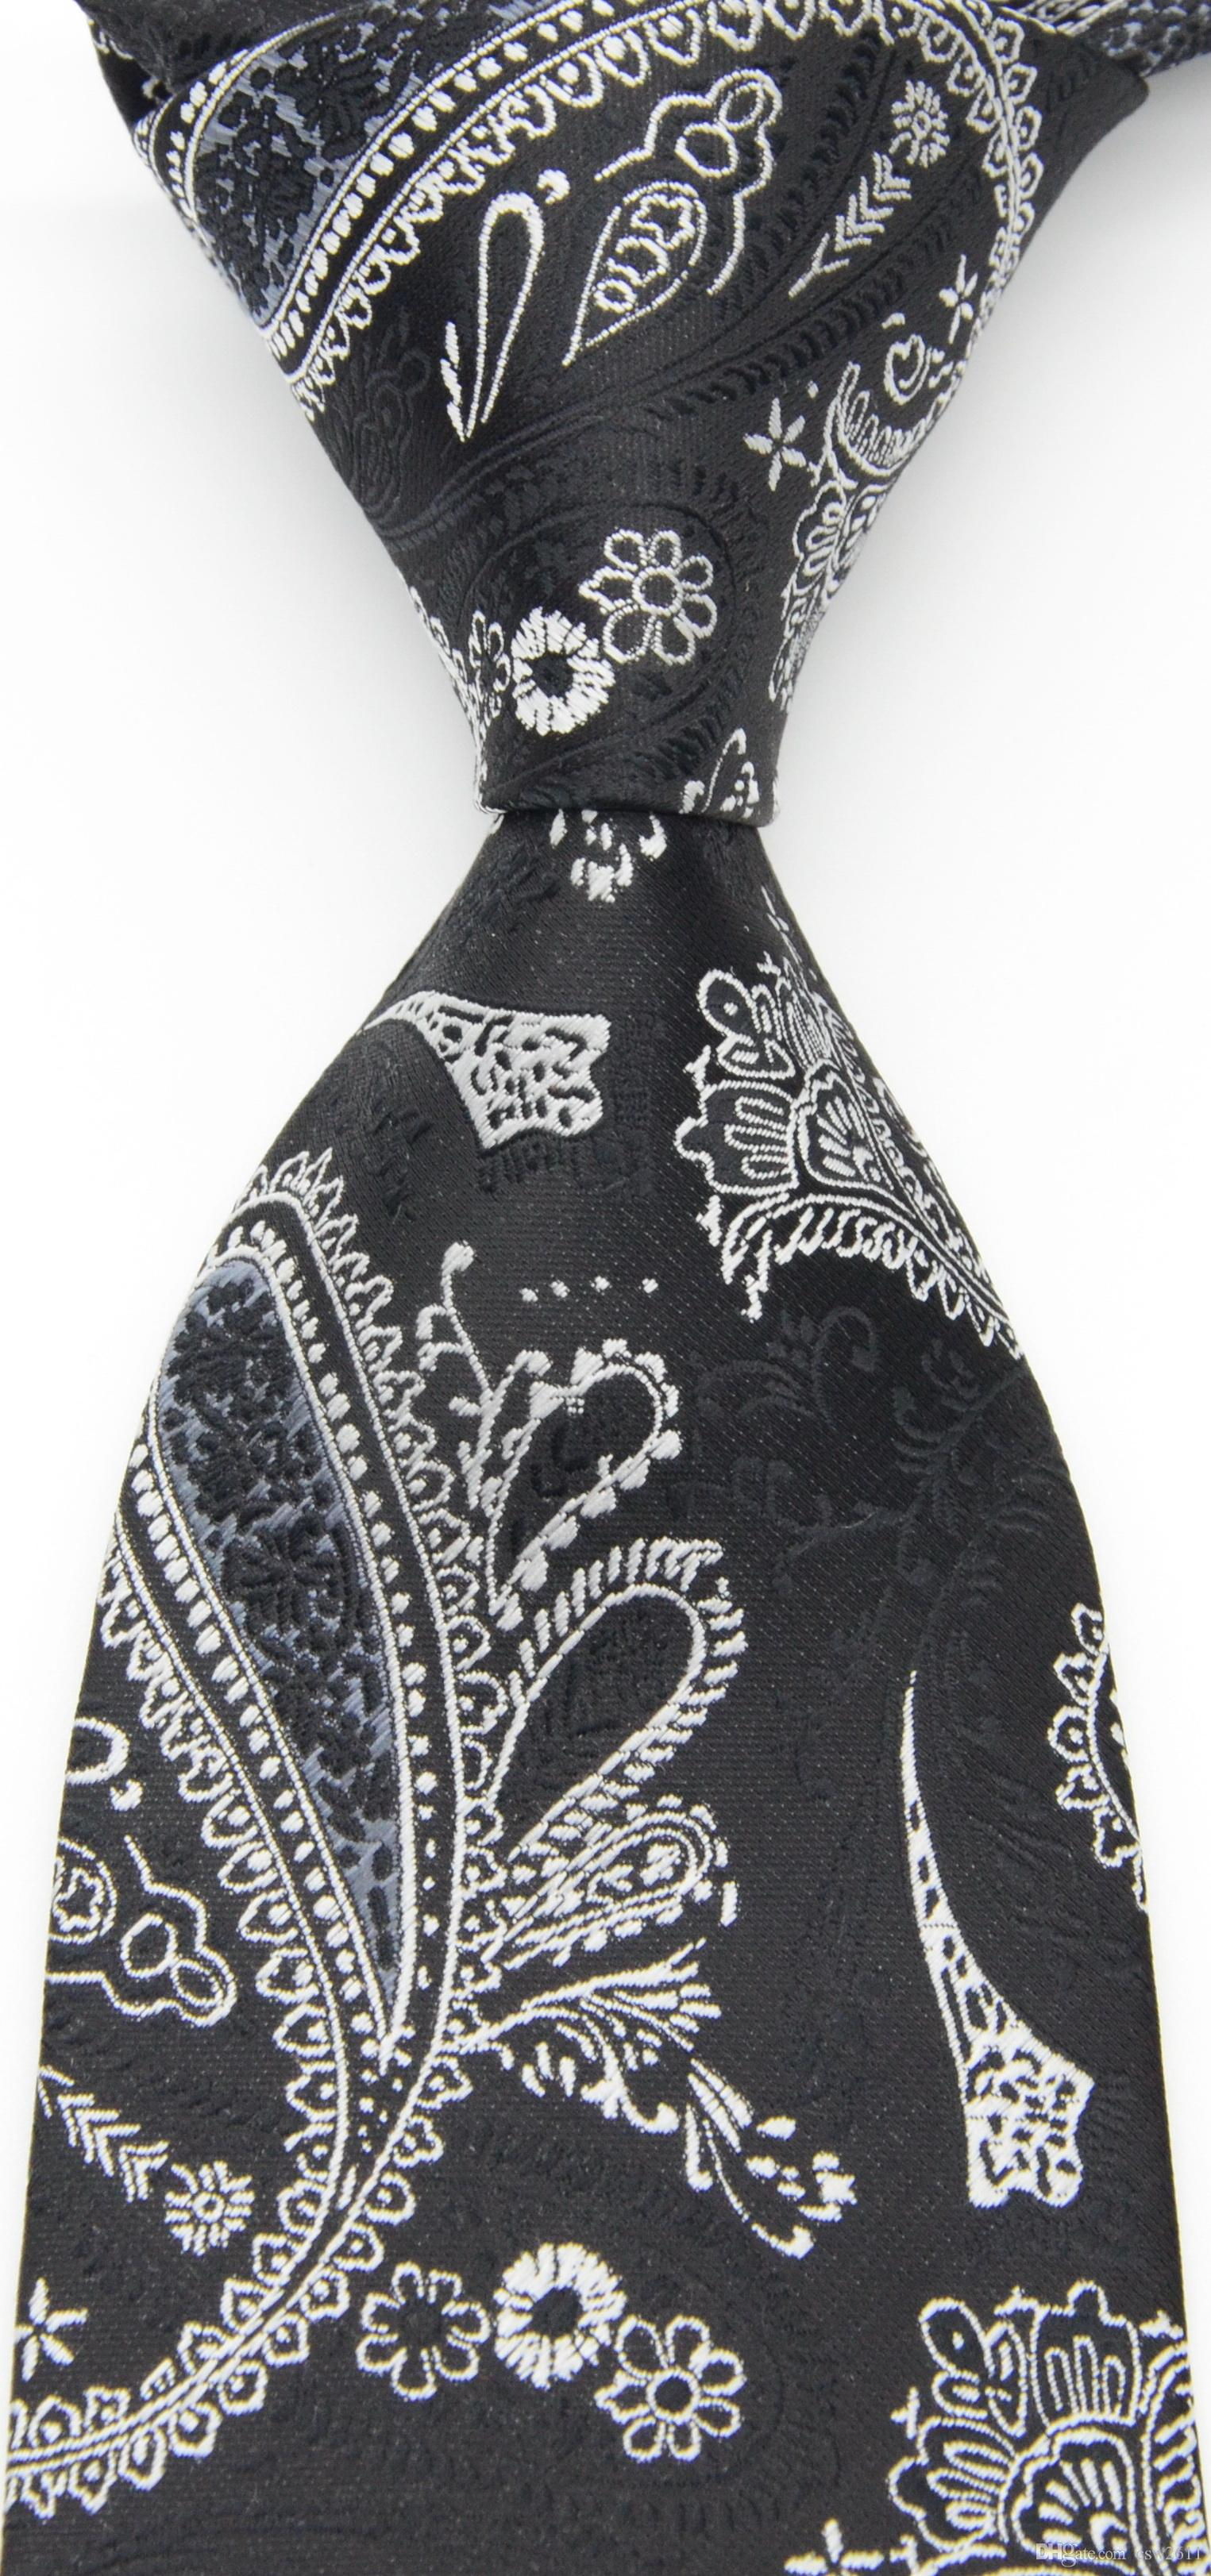 New Classic Paisley Black Red Gray White JACQUARD WOVEN Silk Men/'s Tie Necktie